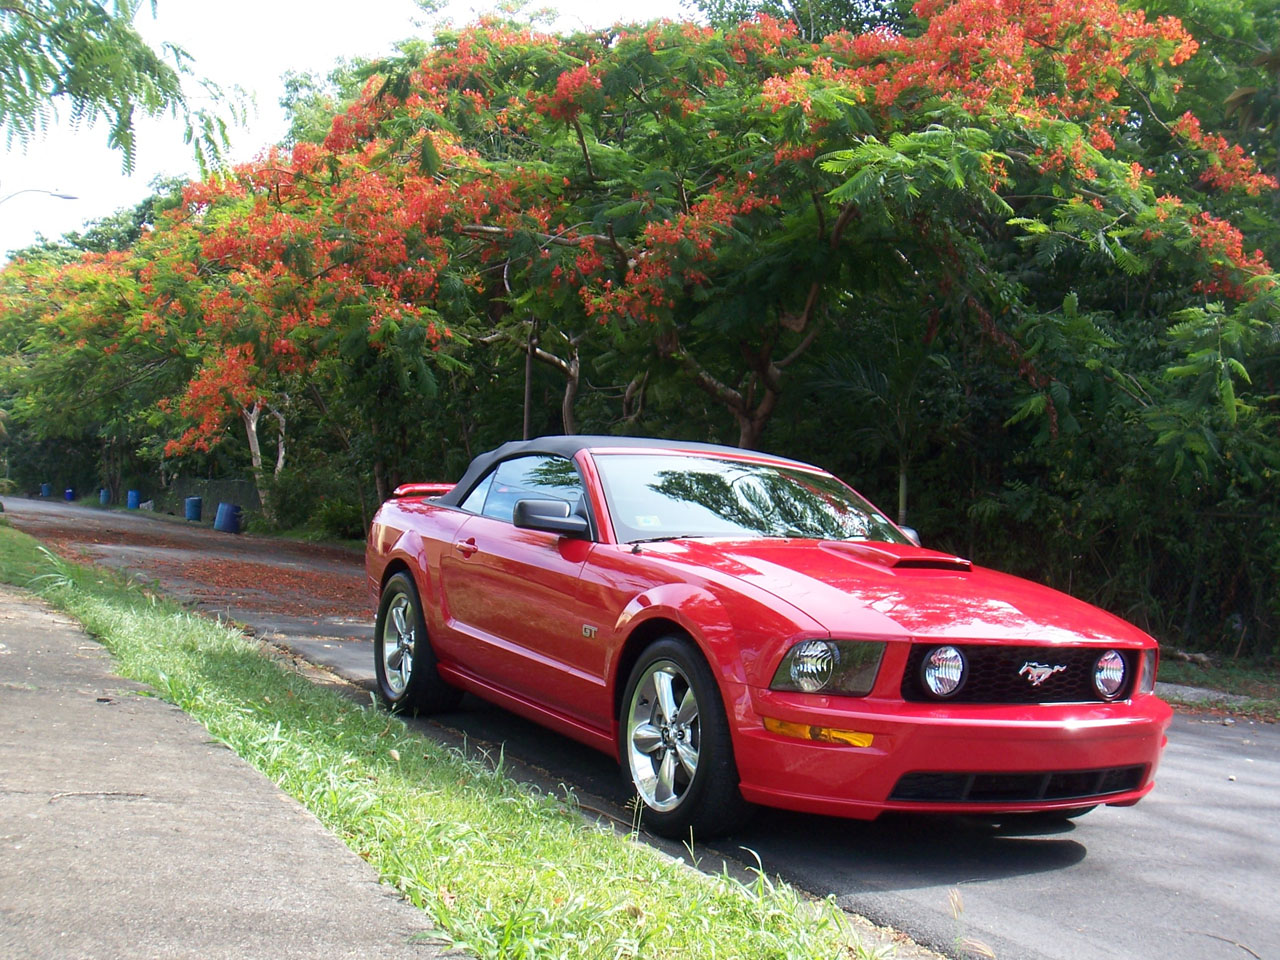 2007 Red Ford Mustang Convertible GT Roush Stage 1 picture, mods, upgrades